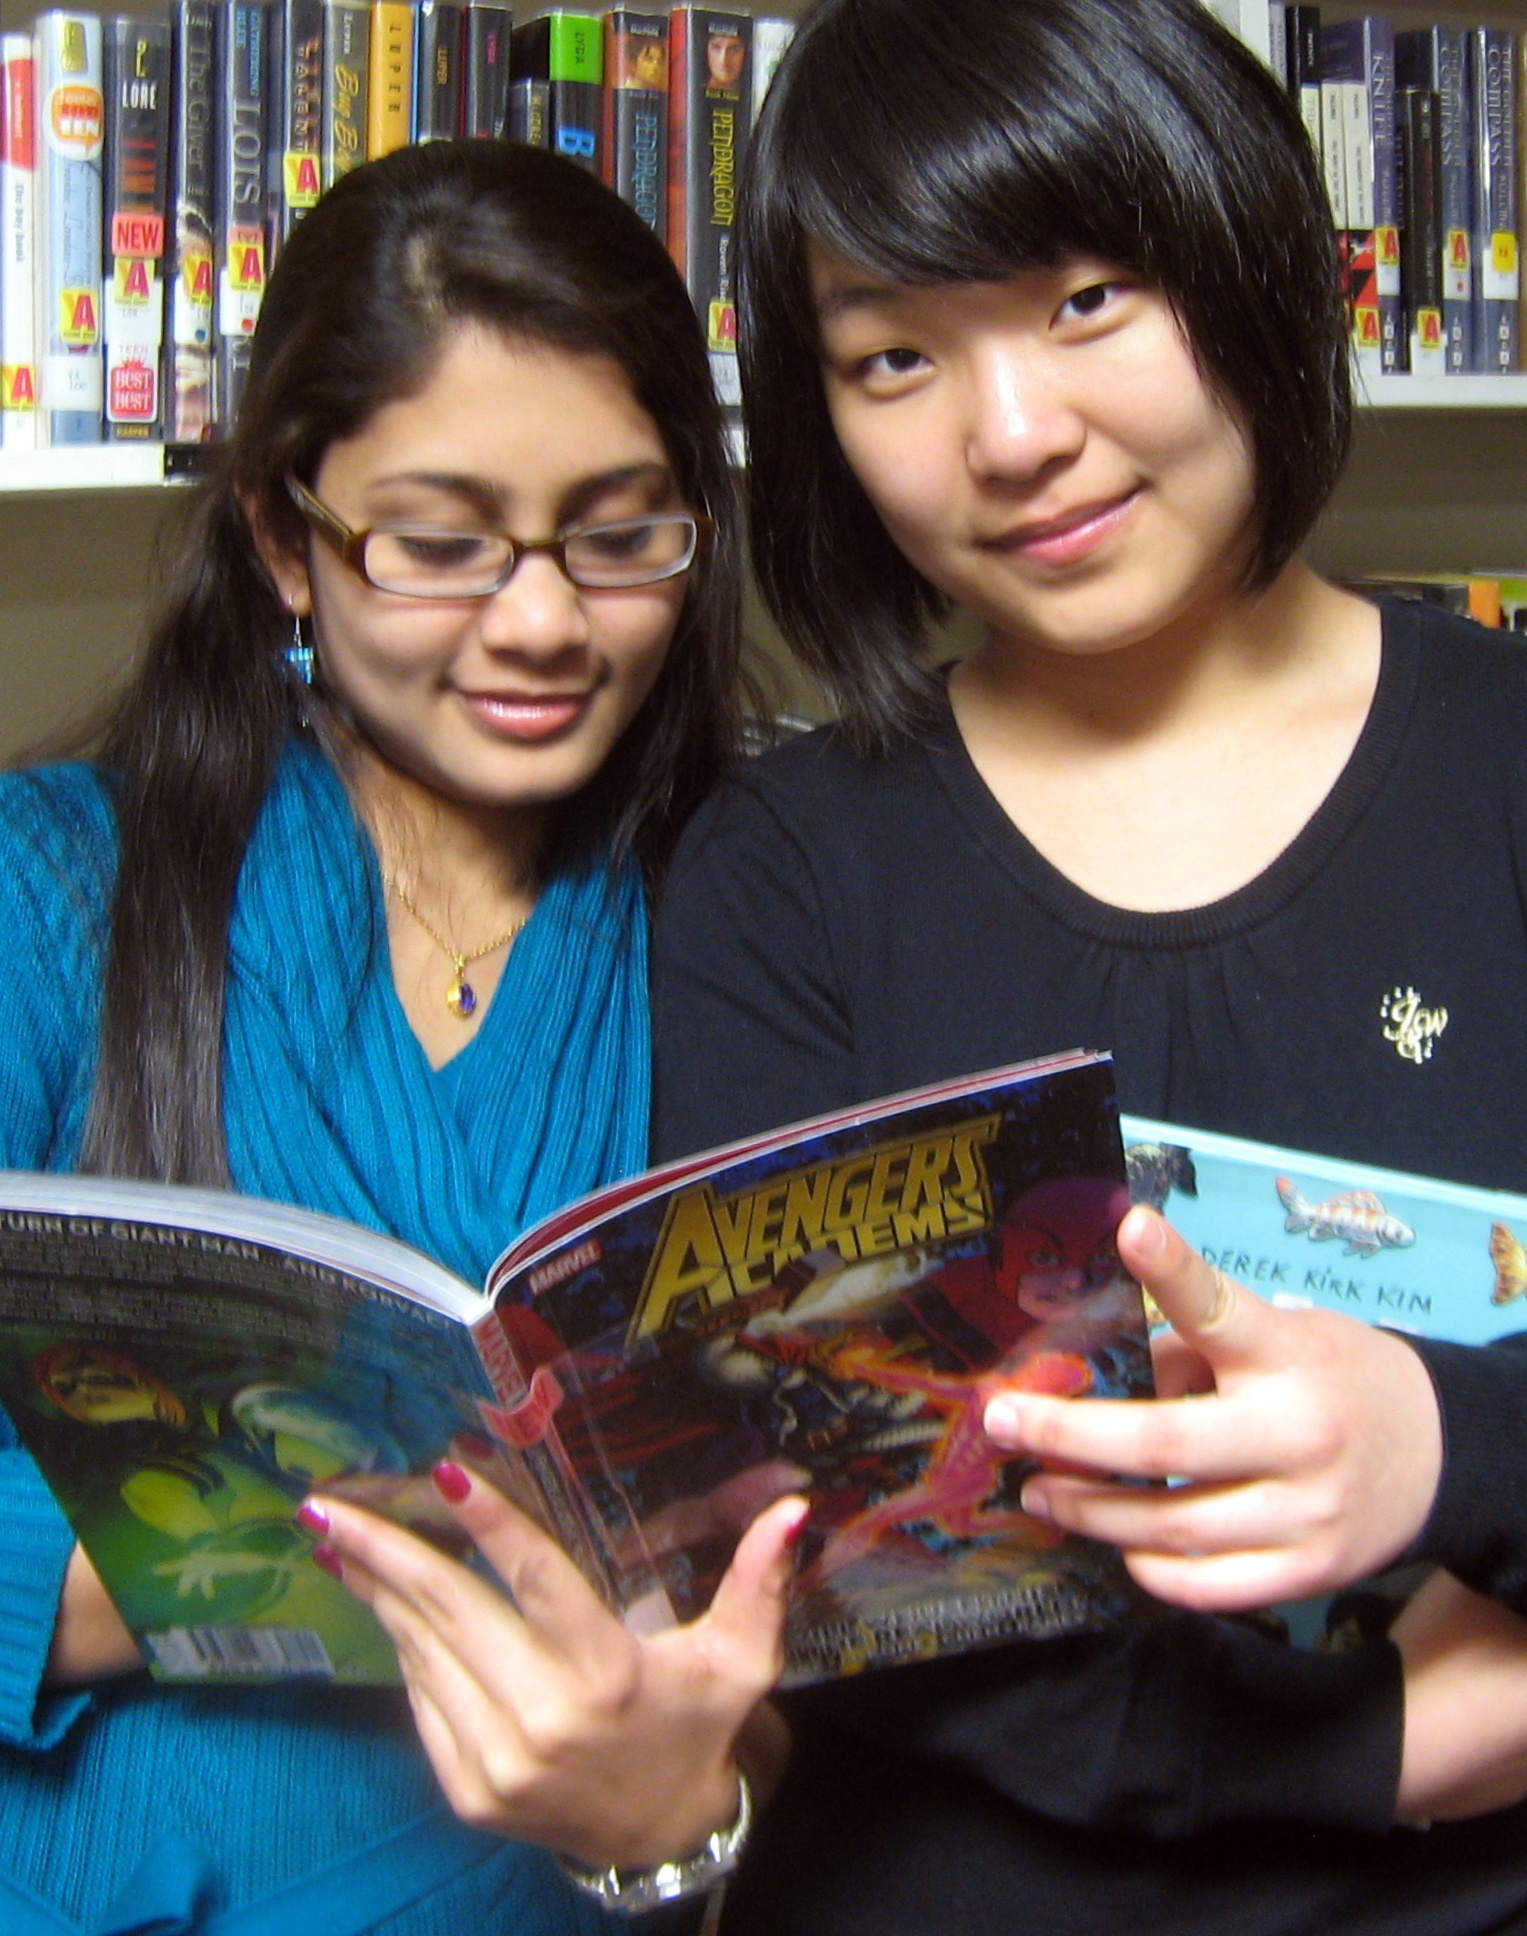 Ishrat and Jing check out the new graphic novels